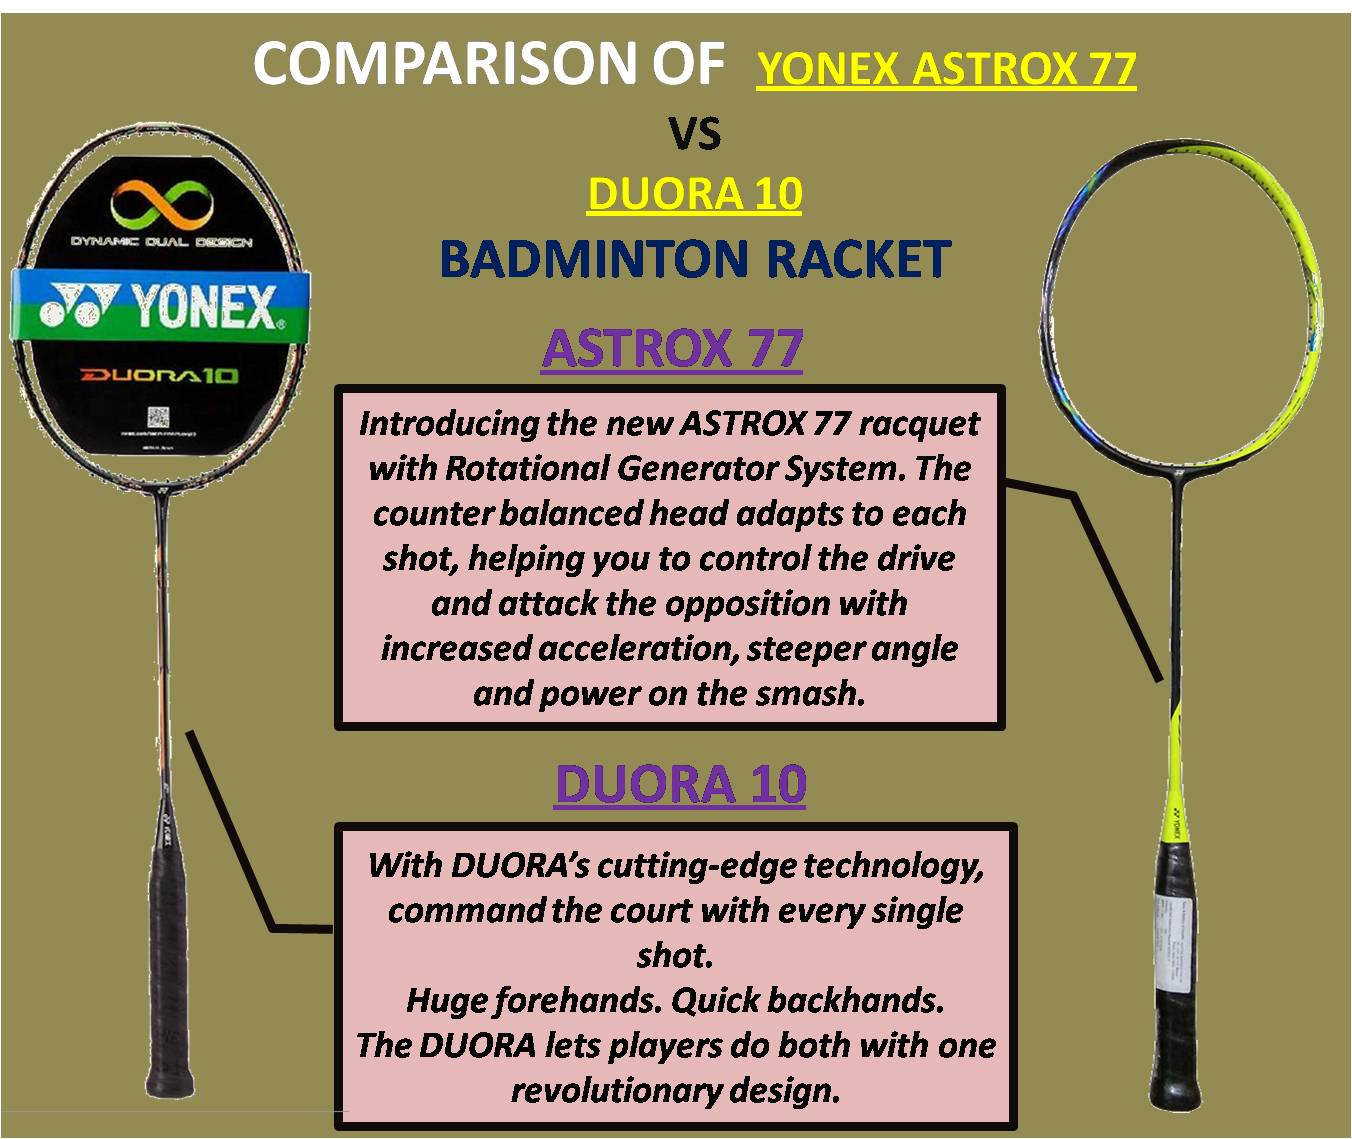 Difference Between Yonex Astrox 77 Vs Yonex Duora 10